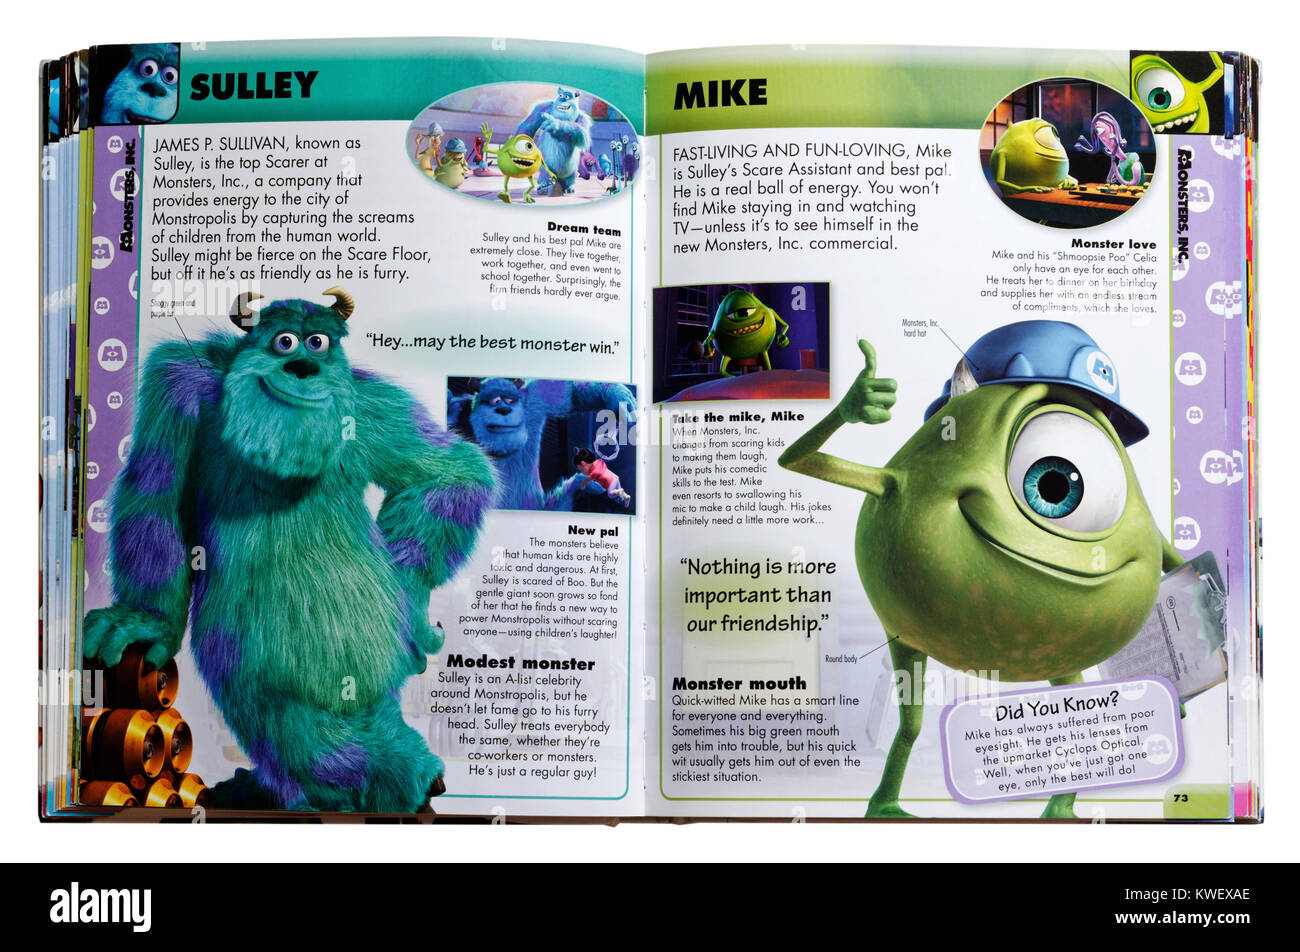 Pixar character Sulley and Mike from the film Monsters Inc.  in an Pixar Character Guide - Stock Image